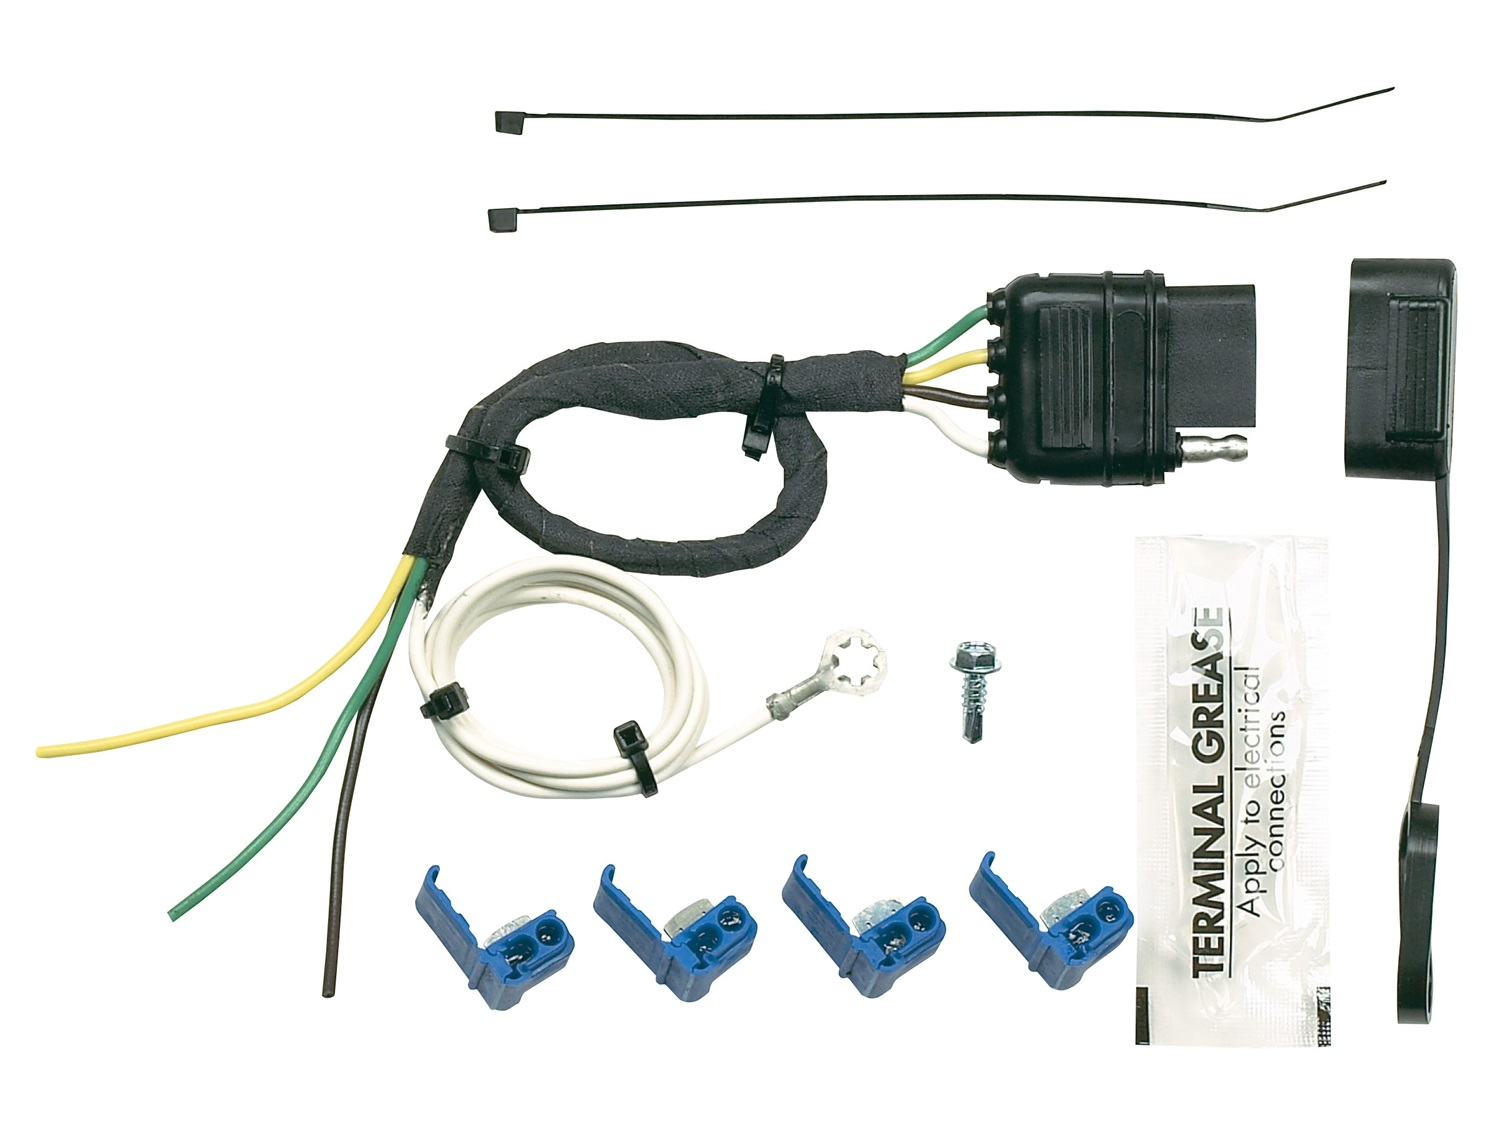 Hopkins 41145 Wiring Diagram Electrical Towing Solutions Harness 31 Images Dodge 7 Way Trailer Connector 2009 Silverado